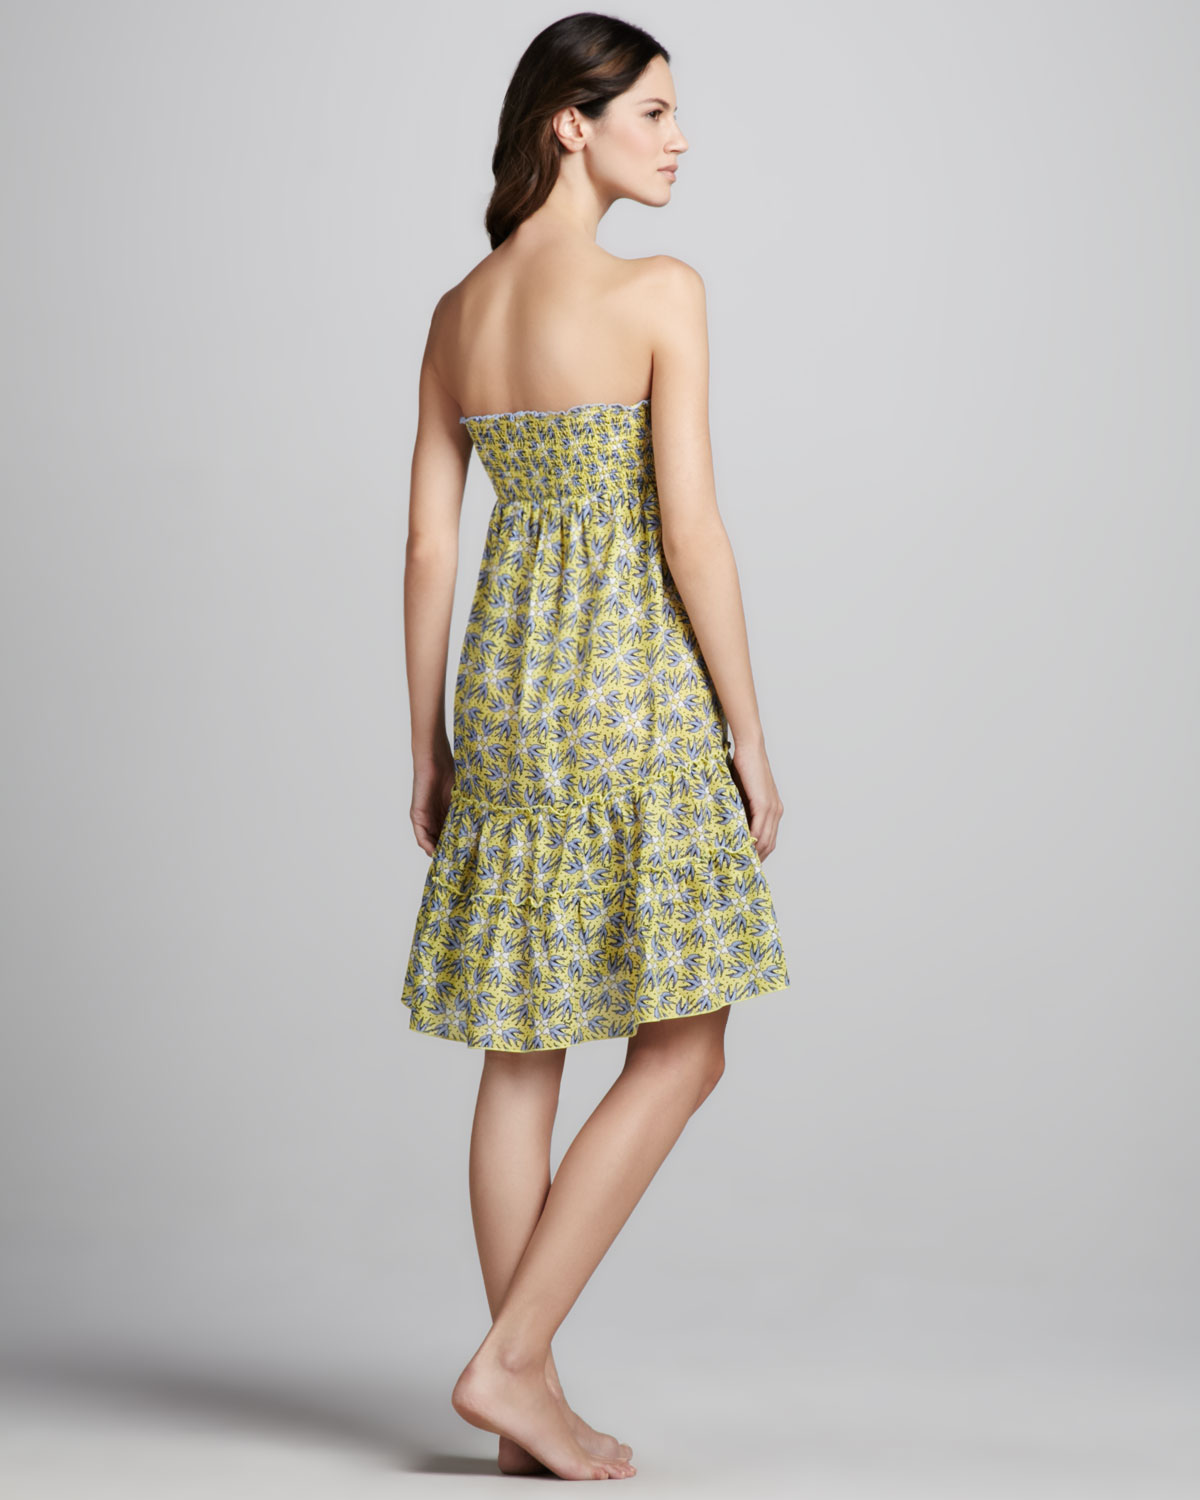 0de79c2365d43 Juicy Couture Love Birds Strapless Coverup Dress in Green - Lyst